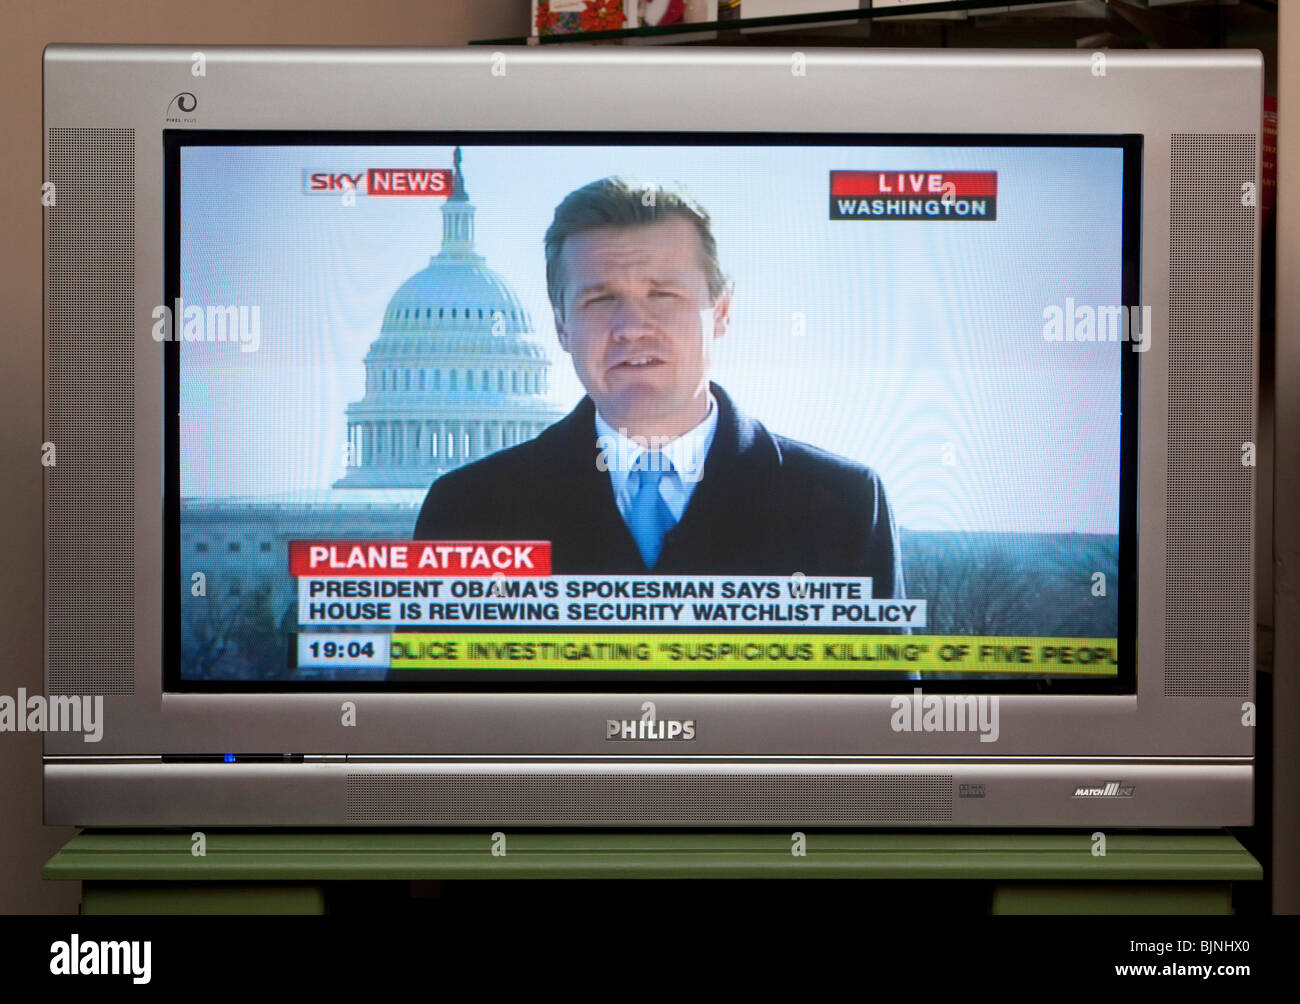 tv screen showing sky news channel stock photo 28749224 alamy